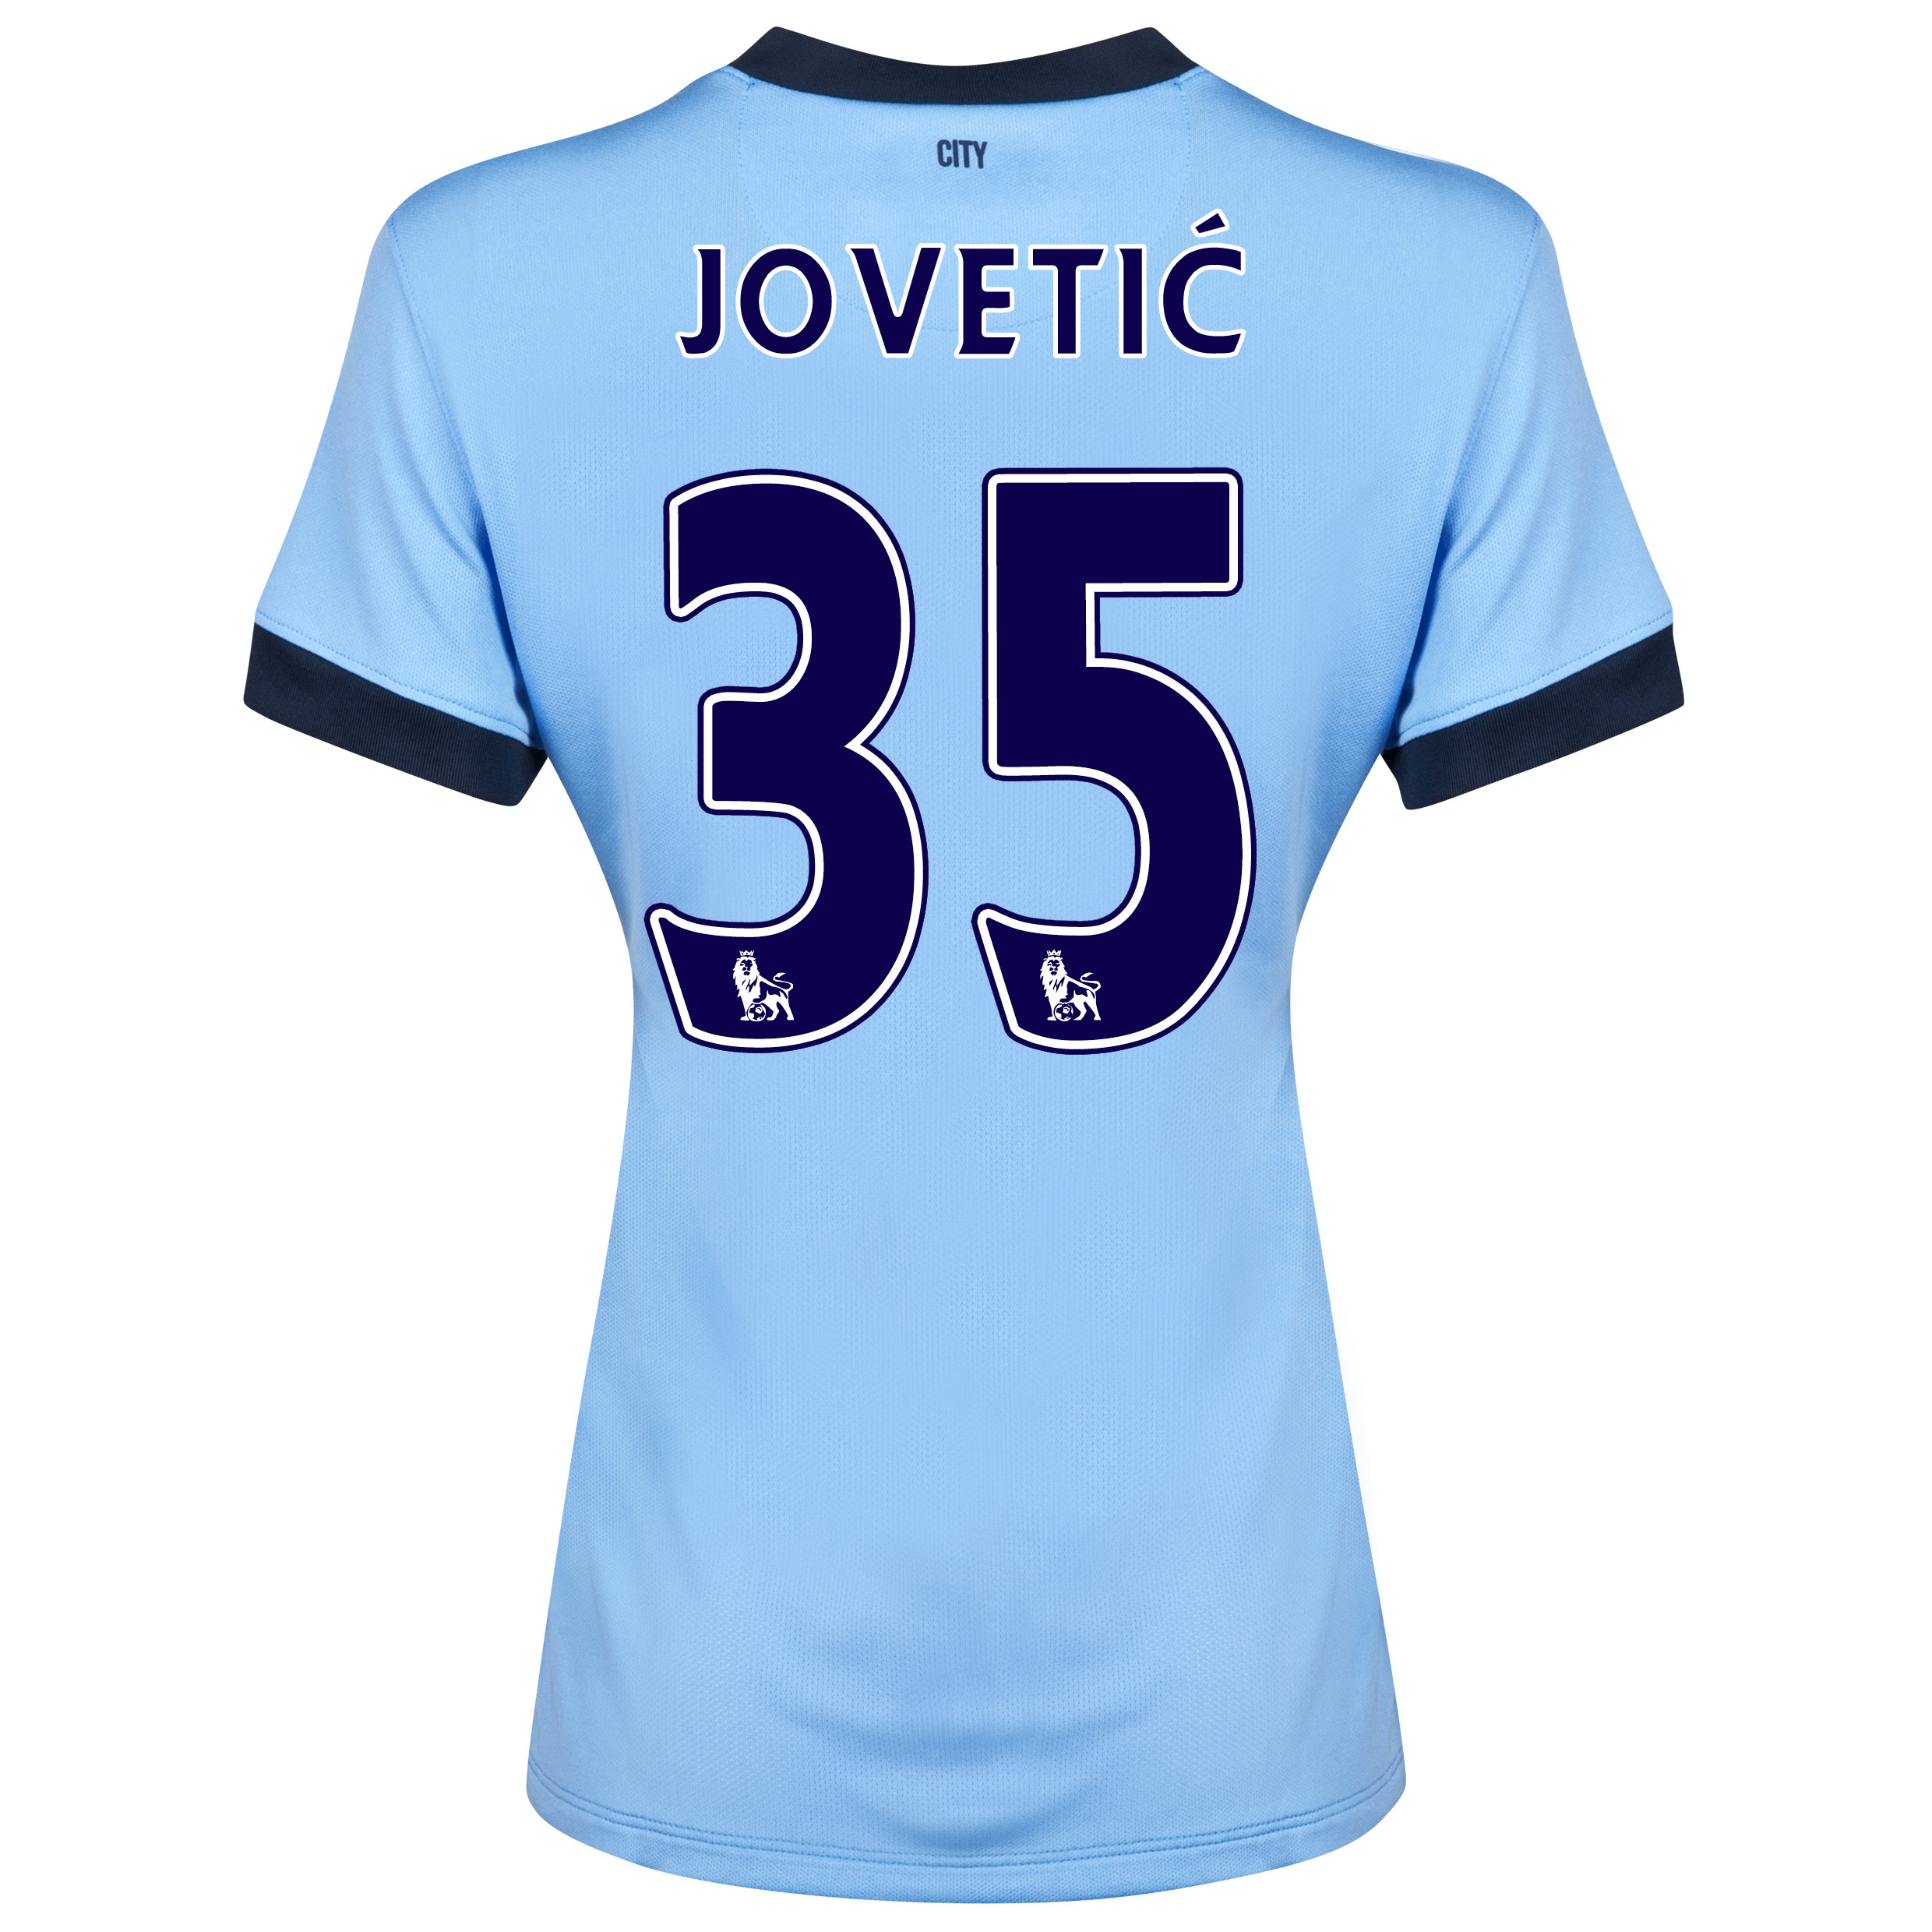 Manchester City Home Shirt 2014/15 - Womens Sky Blue with Jovetic 35 printing